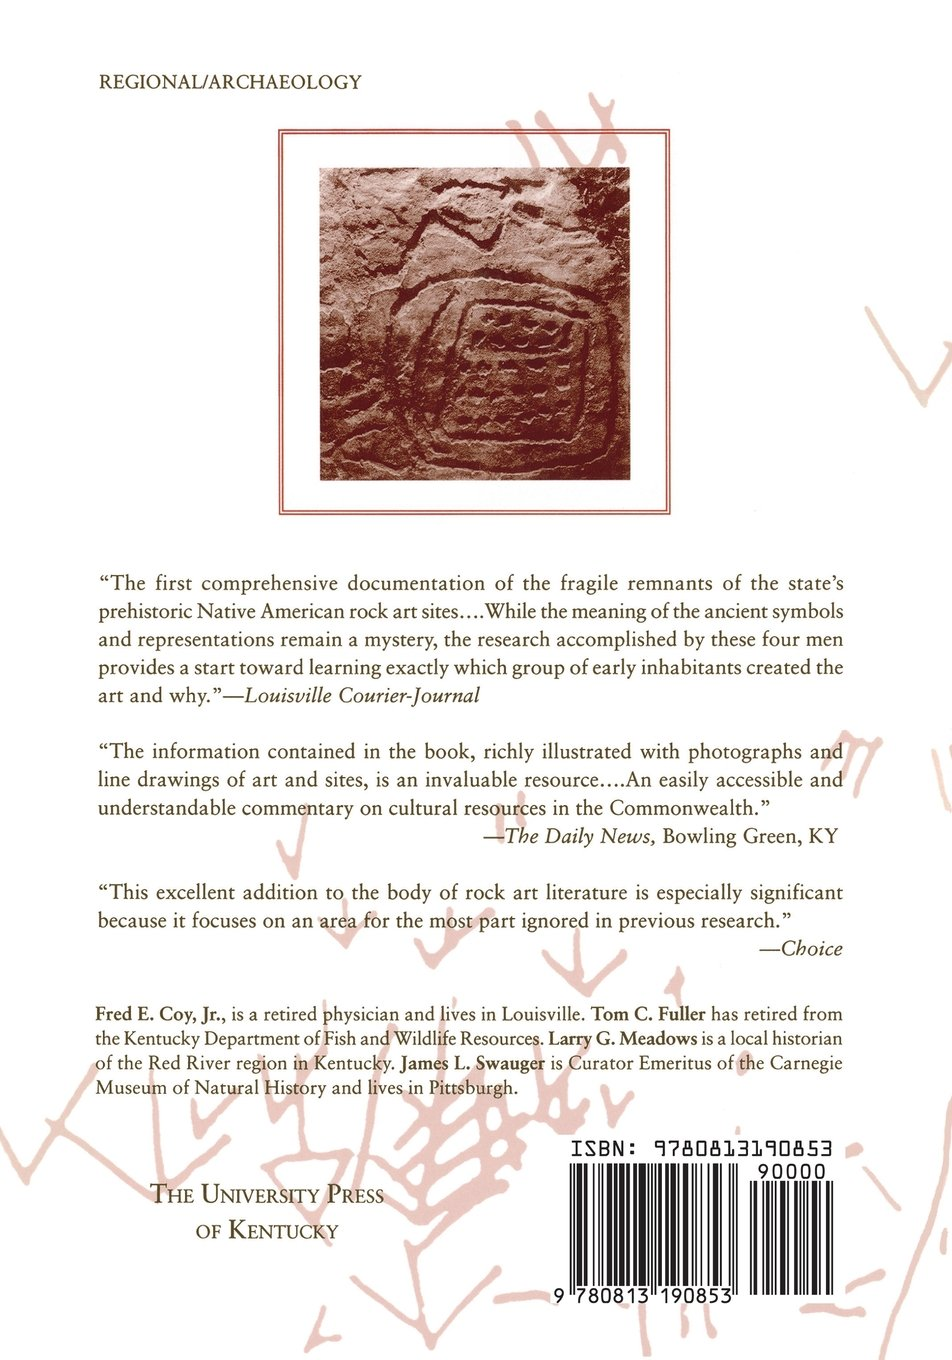 Rock art of kentucky perspectives on kentuckys past fred e coy rock art of kentucky perspectives on kentuckys past fred e coy jr thomas c fuller larry g meadows james f swauger 9780813190853 amazon biocorpaavc Image collections